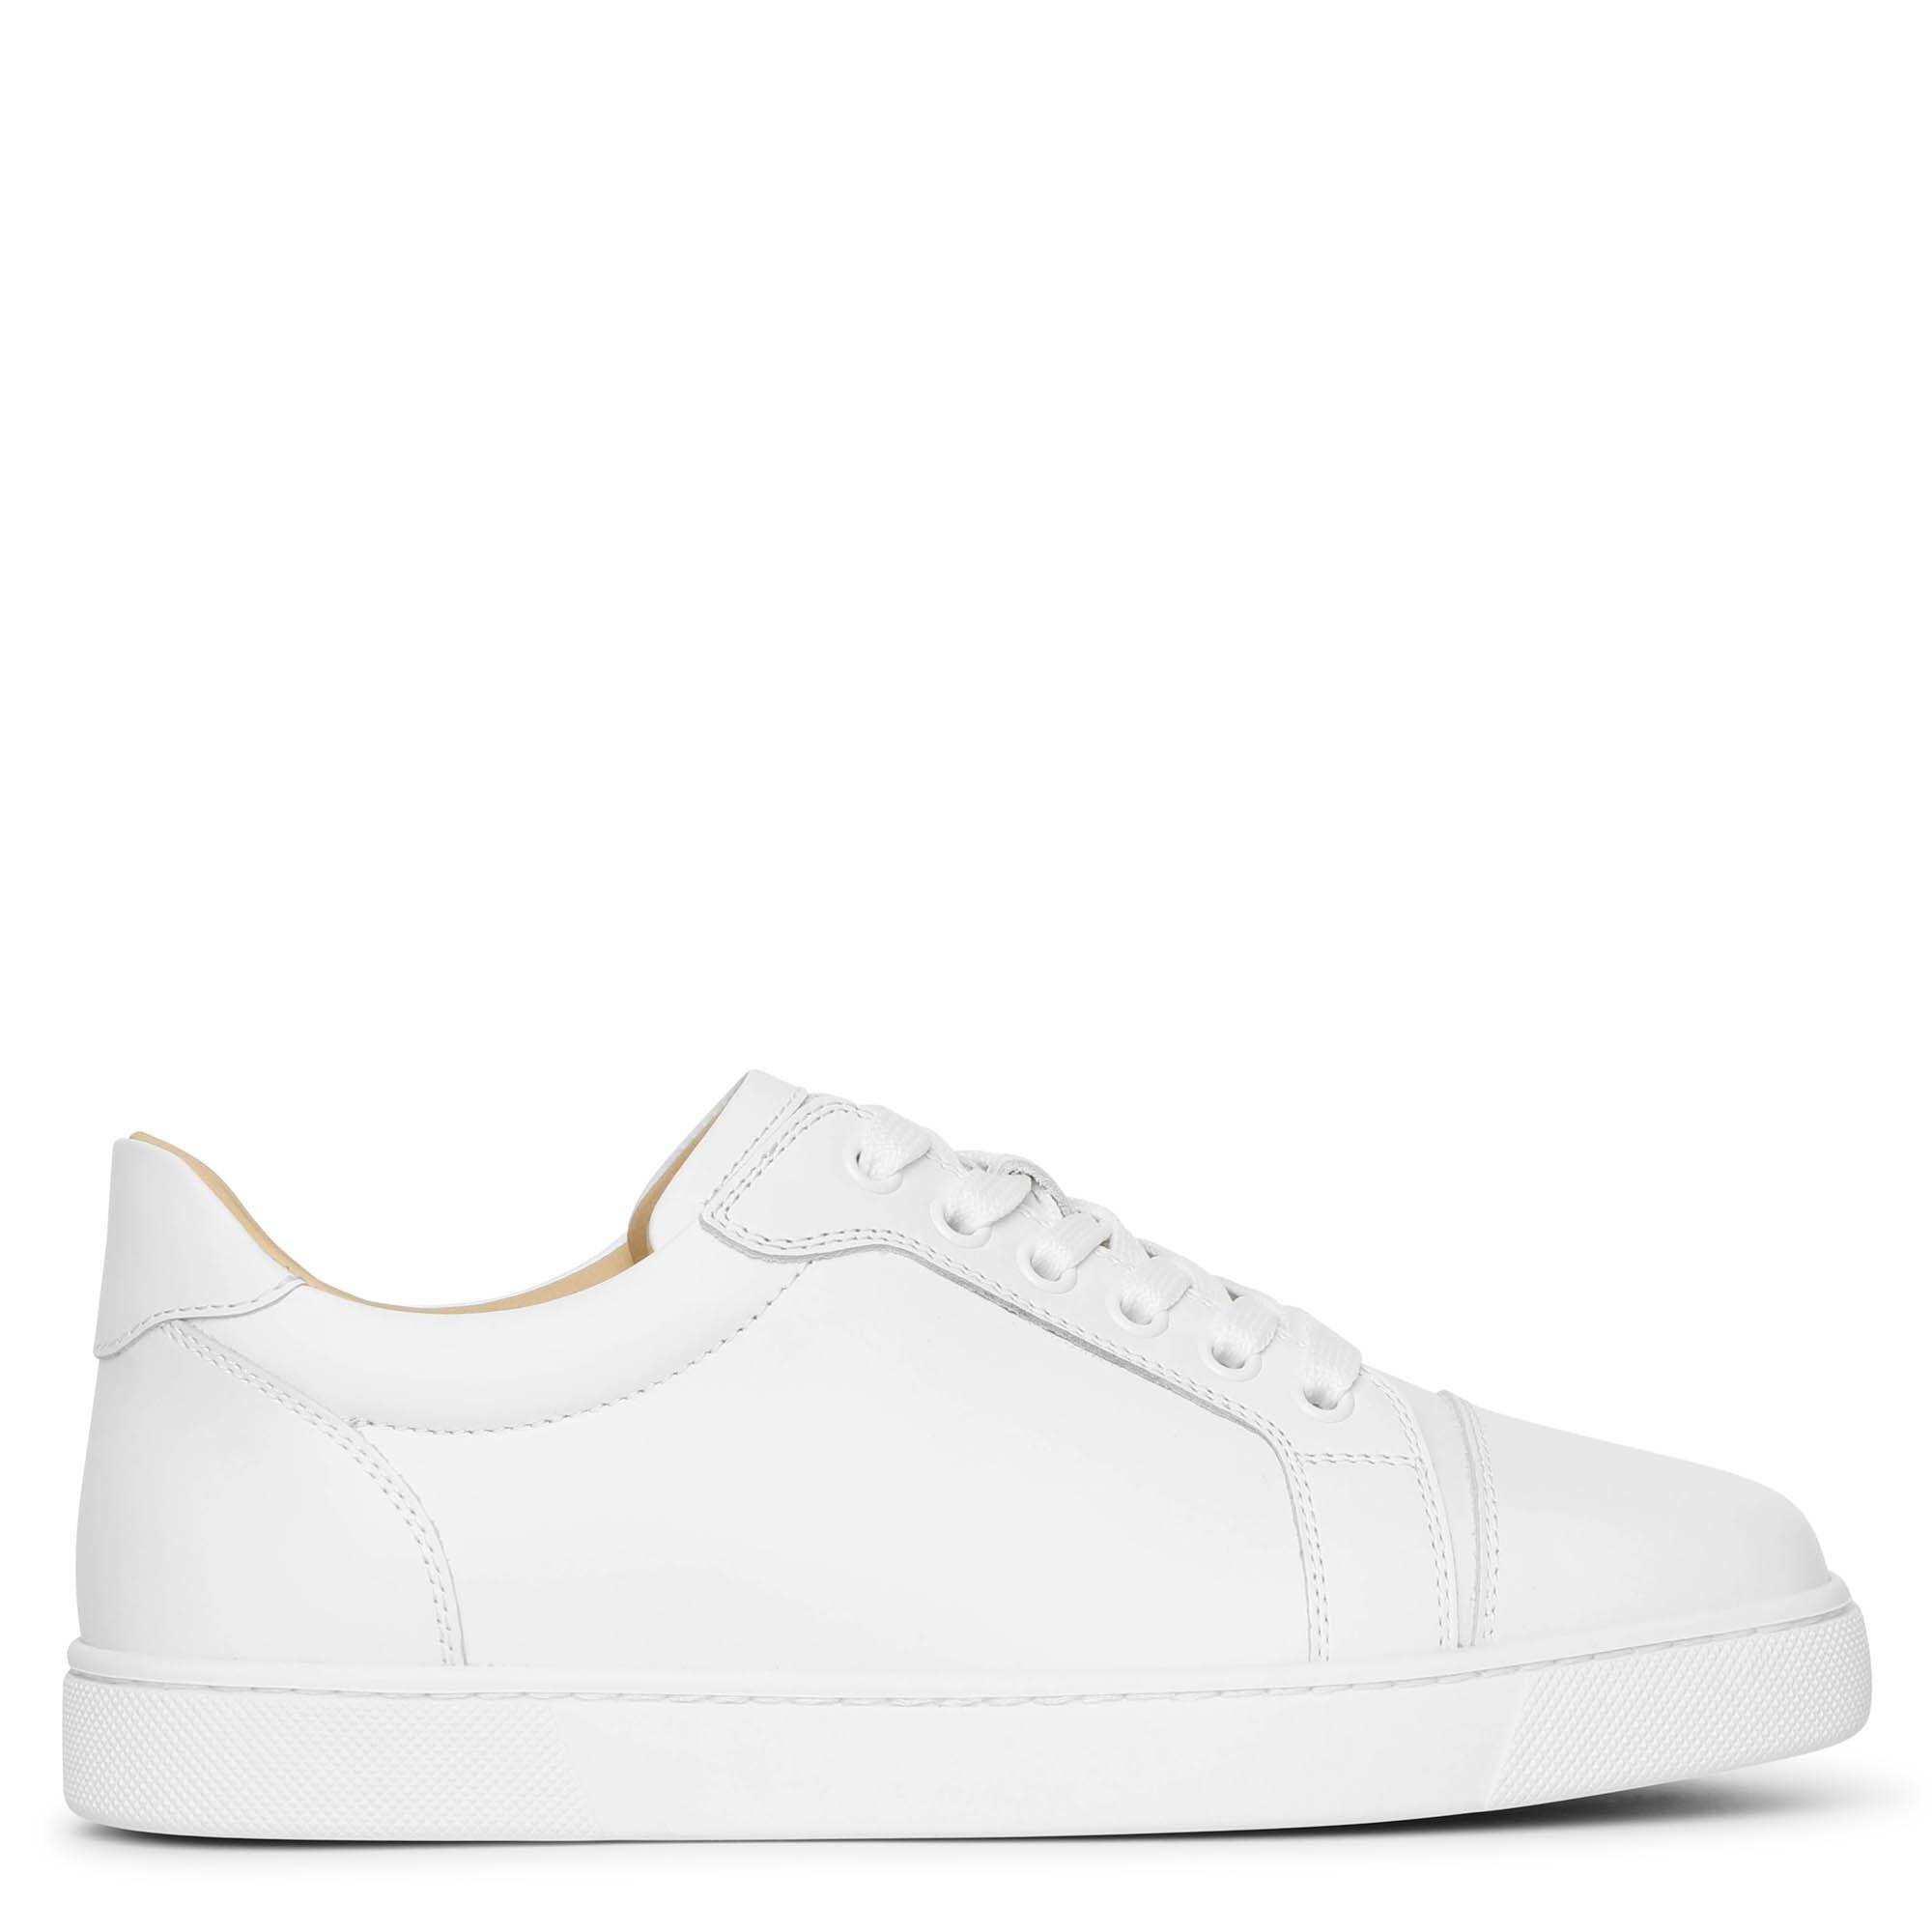 Christian Louboutin Vieira white leather sneakers  - White - female - Size: 37